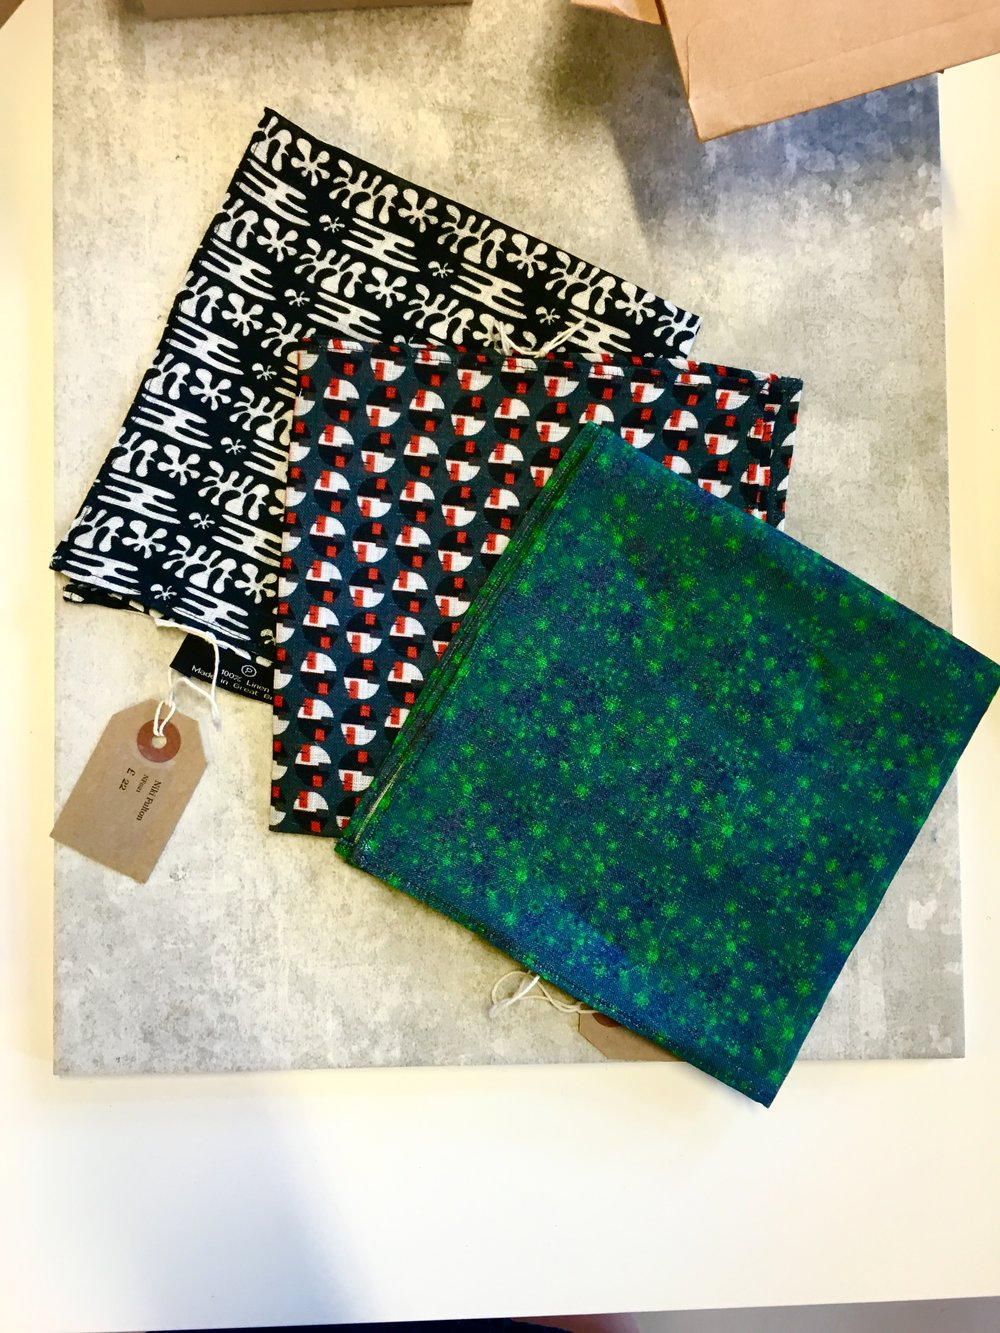 Textile designer Niki Fulton featured in Craft Scotland sumer show with her lovely array of textile designs. From scarves ties and pocket squares Niki has produced some intricate pattern work